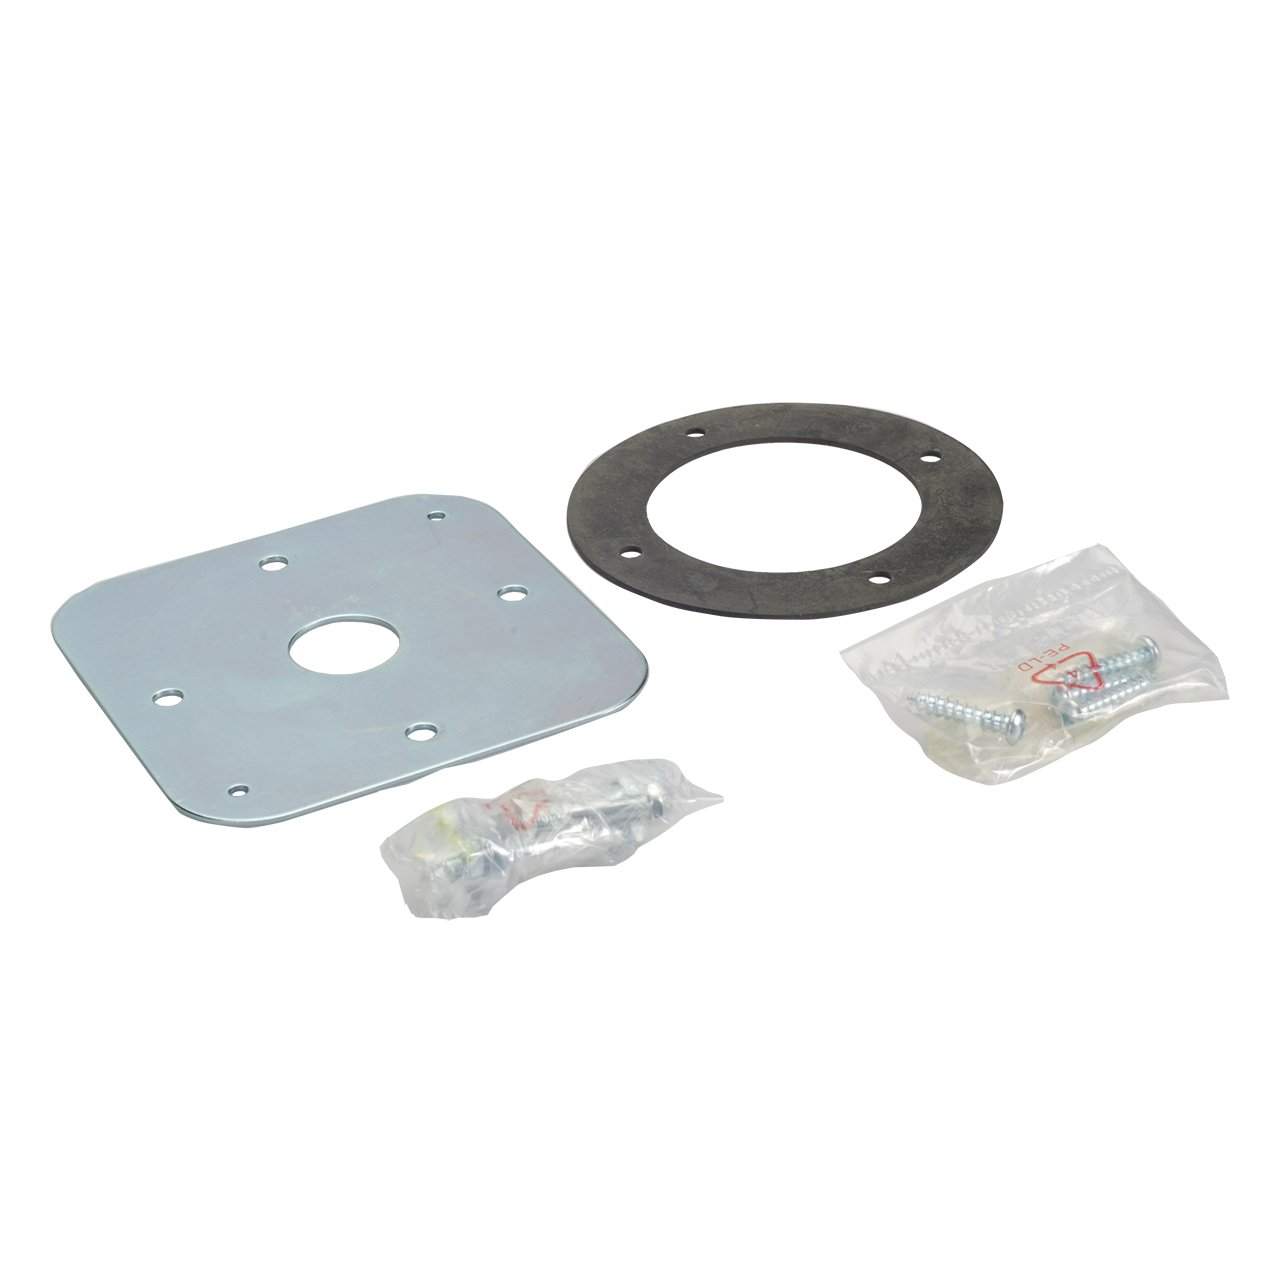 Magnadyne RVTV-B2 Omni-Directional Amplified TV/AM/FM Antenna and Distribution Plate Black by MobileVision (Image #2)